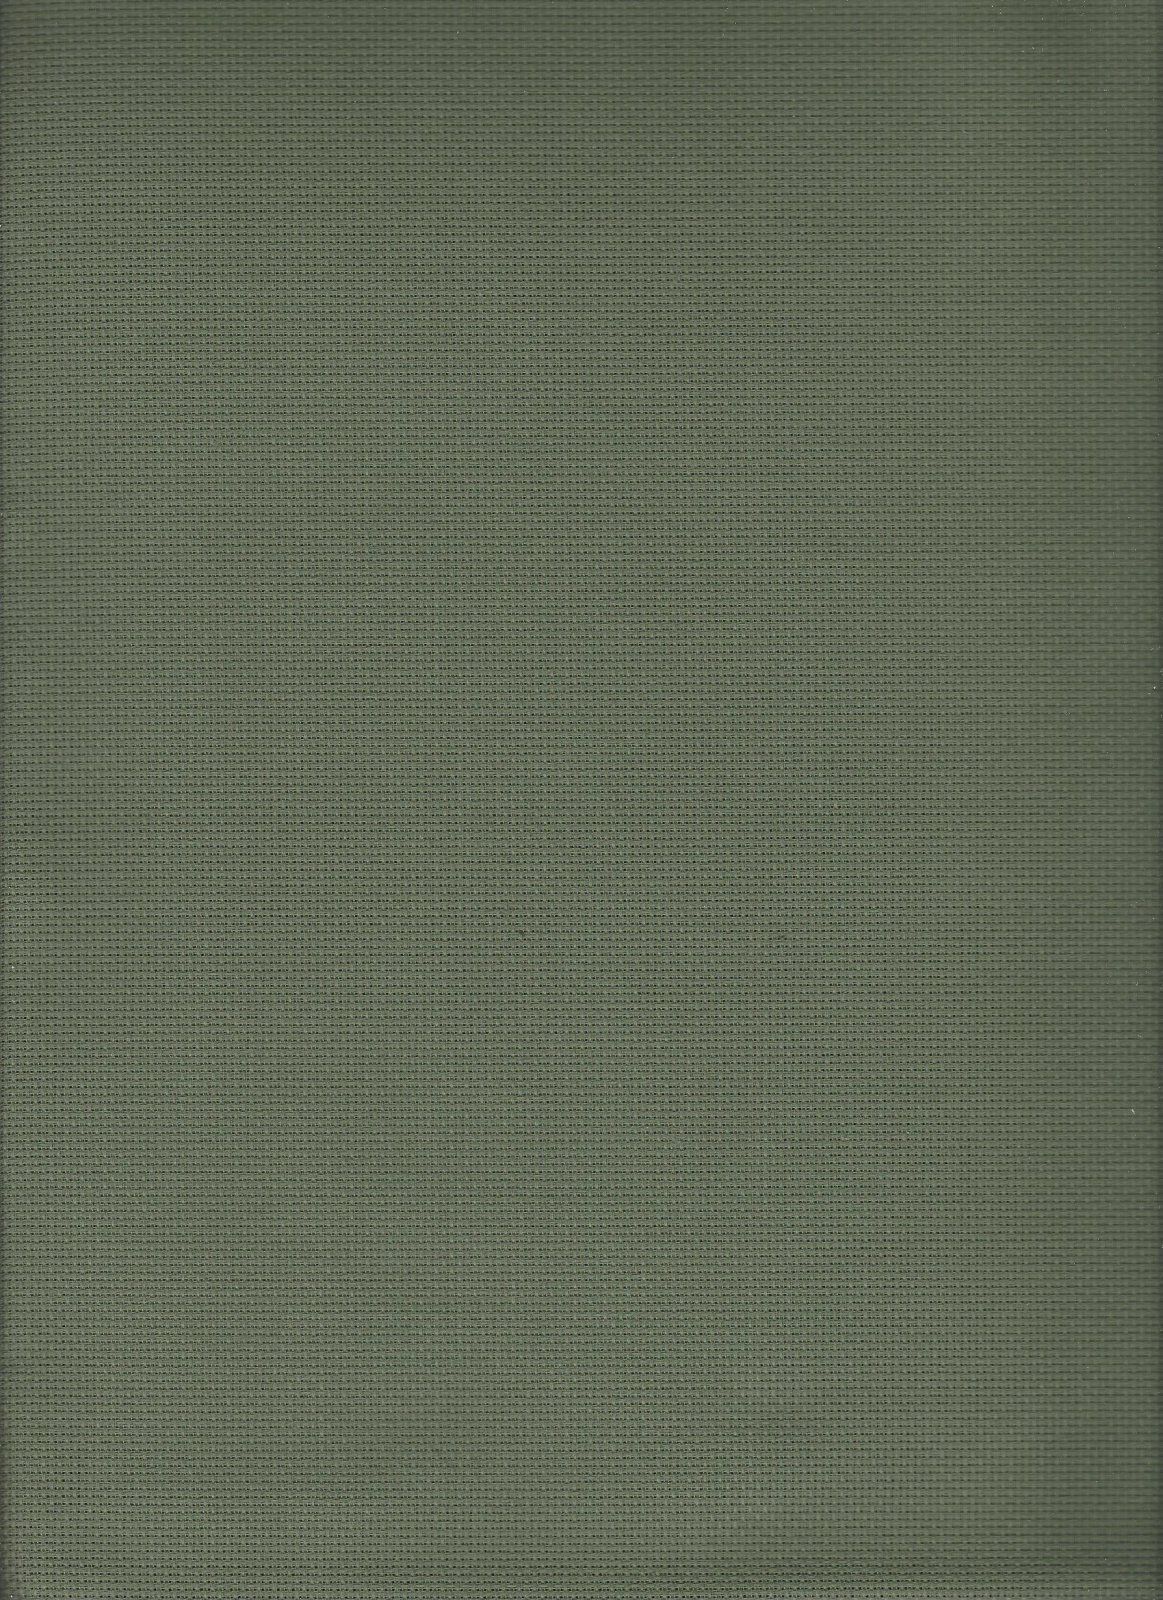 Aida 18ct Olive Green/Dusty Green (discontinued color)